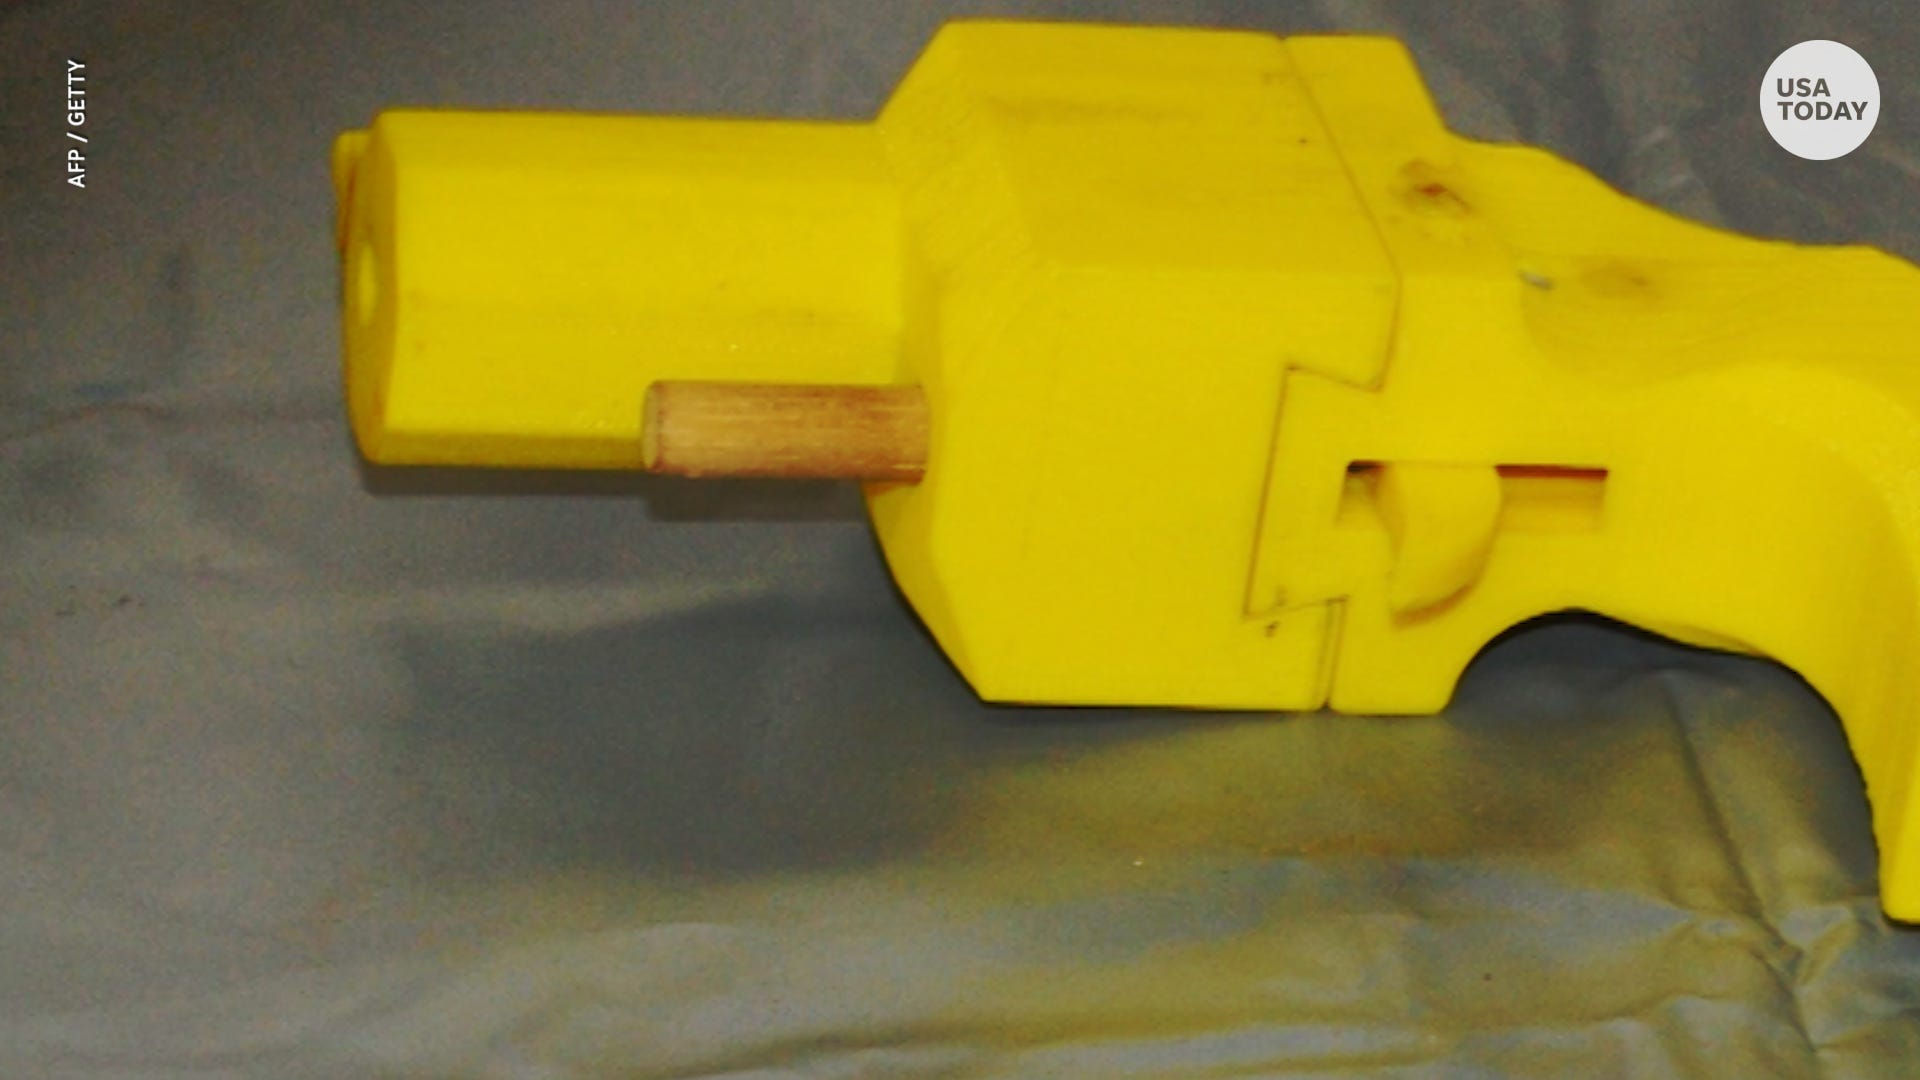 3D guns: How 3D printed gun parts are made, and how they're